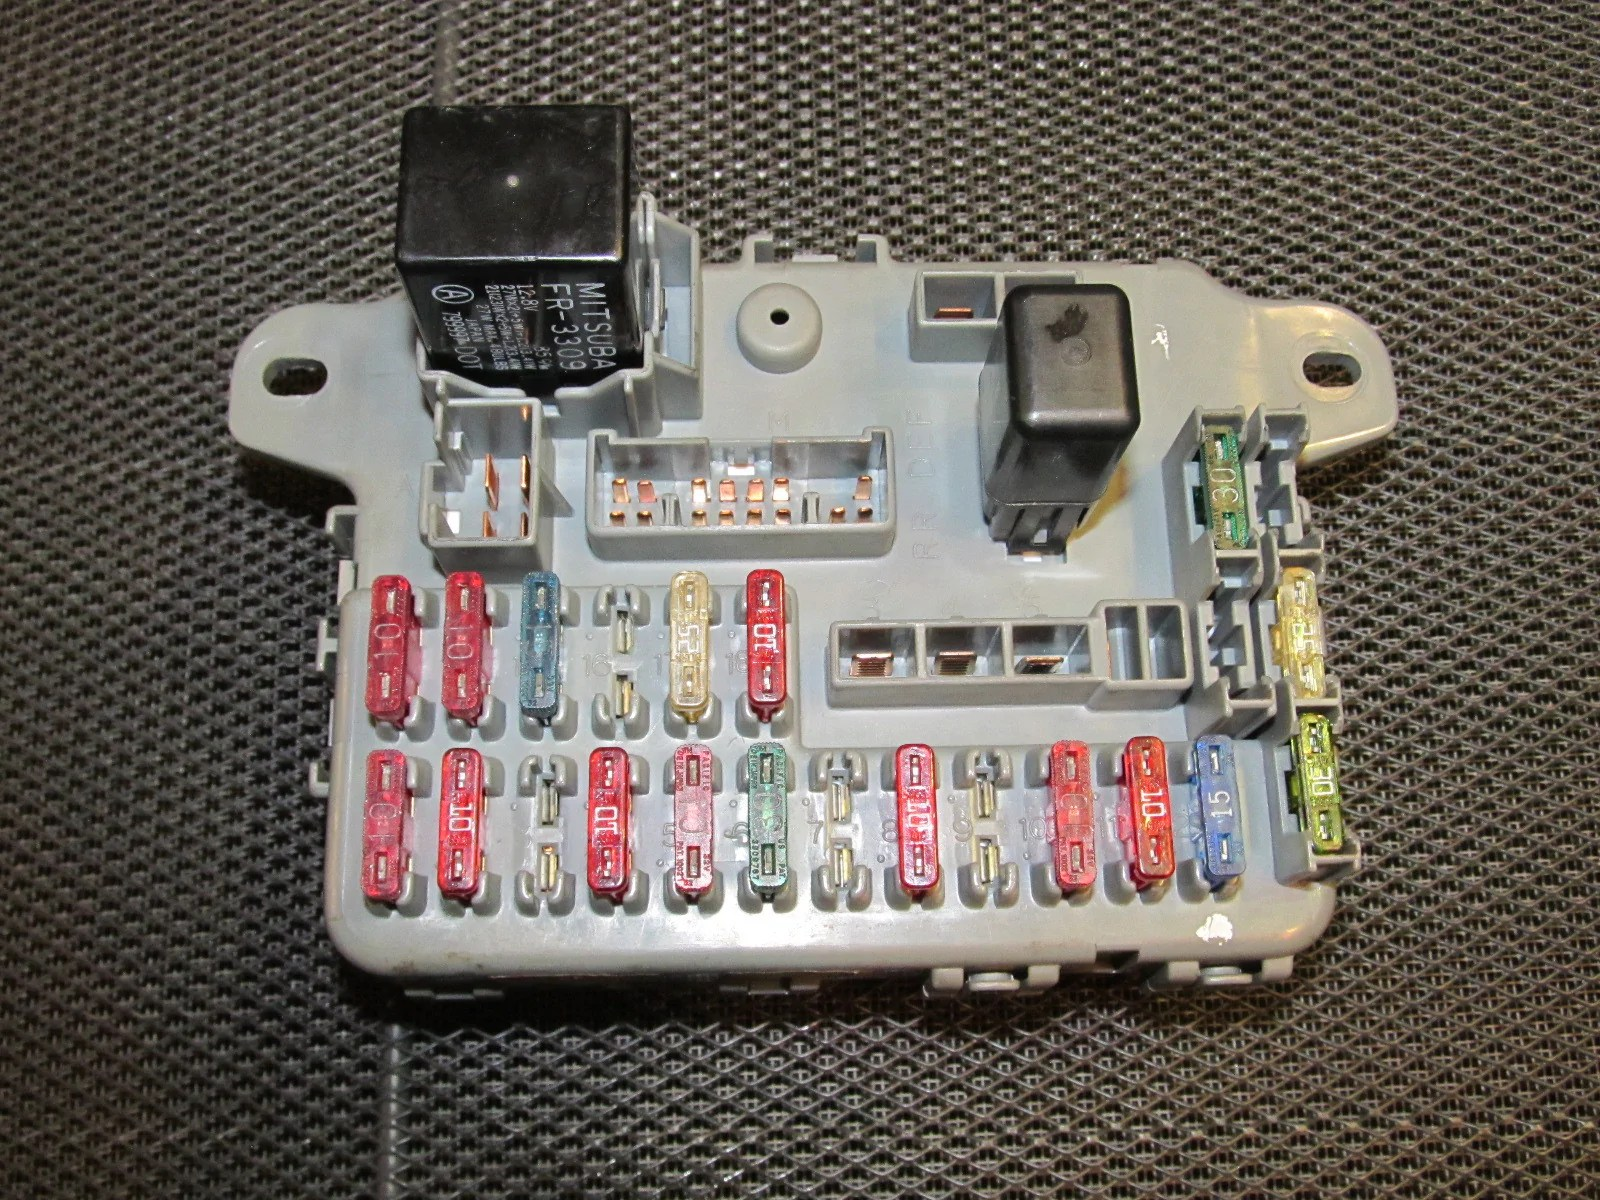 medium resolution of 88 89 honda crx oem d15b2 interior fuse box autopartone com rh autopartone com 2006 honda civic fuse box diagram honda civic ac compresor fiuse